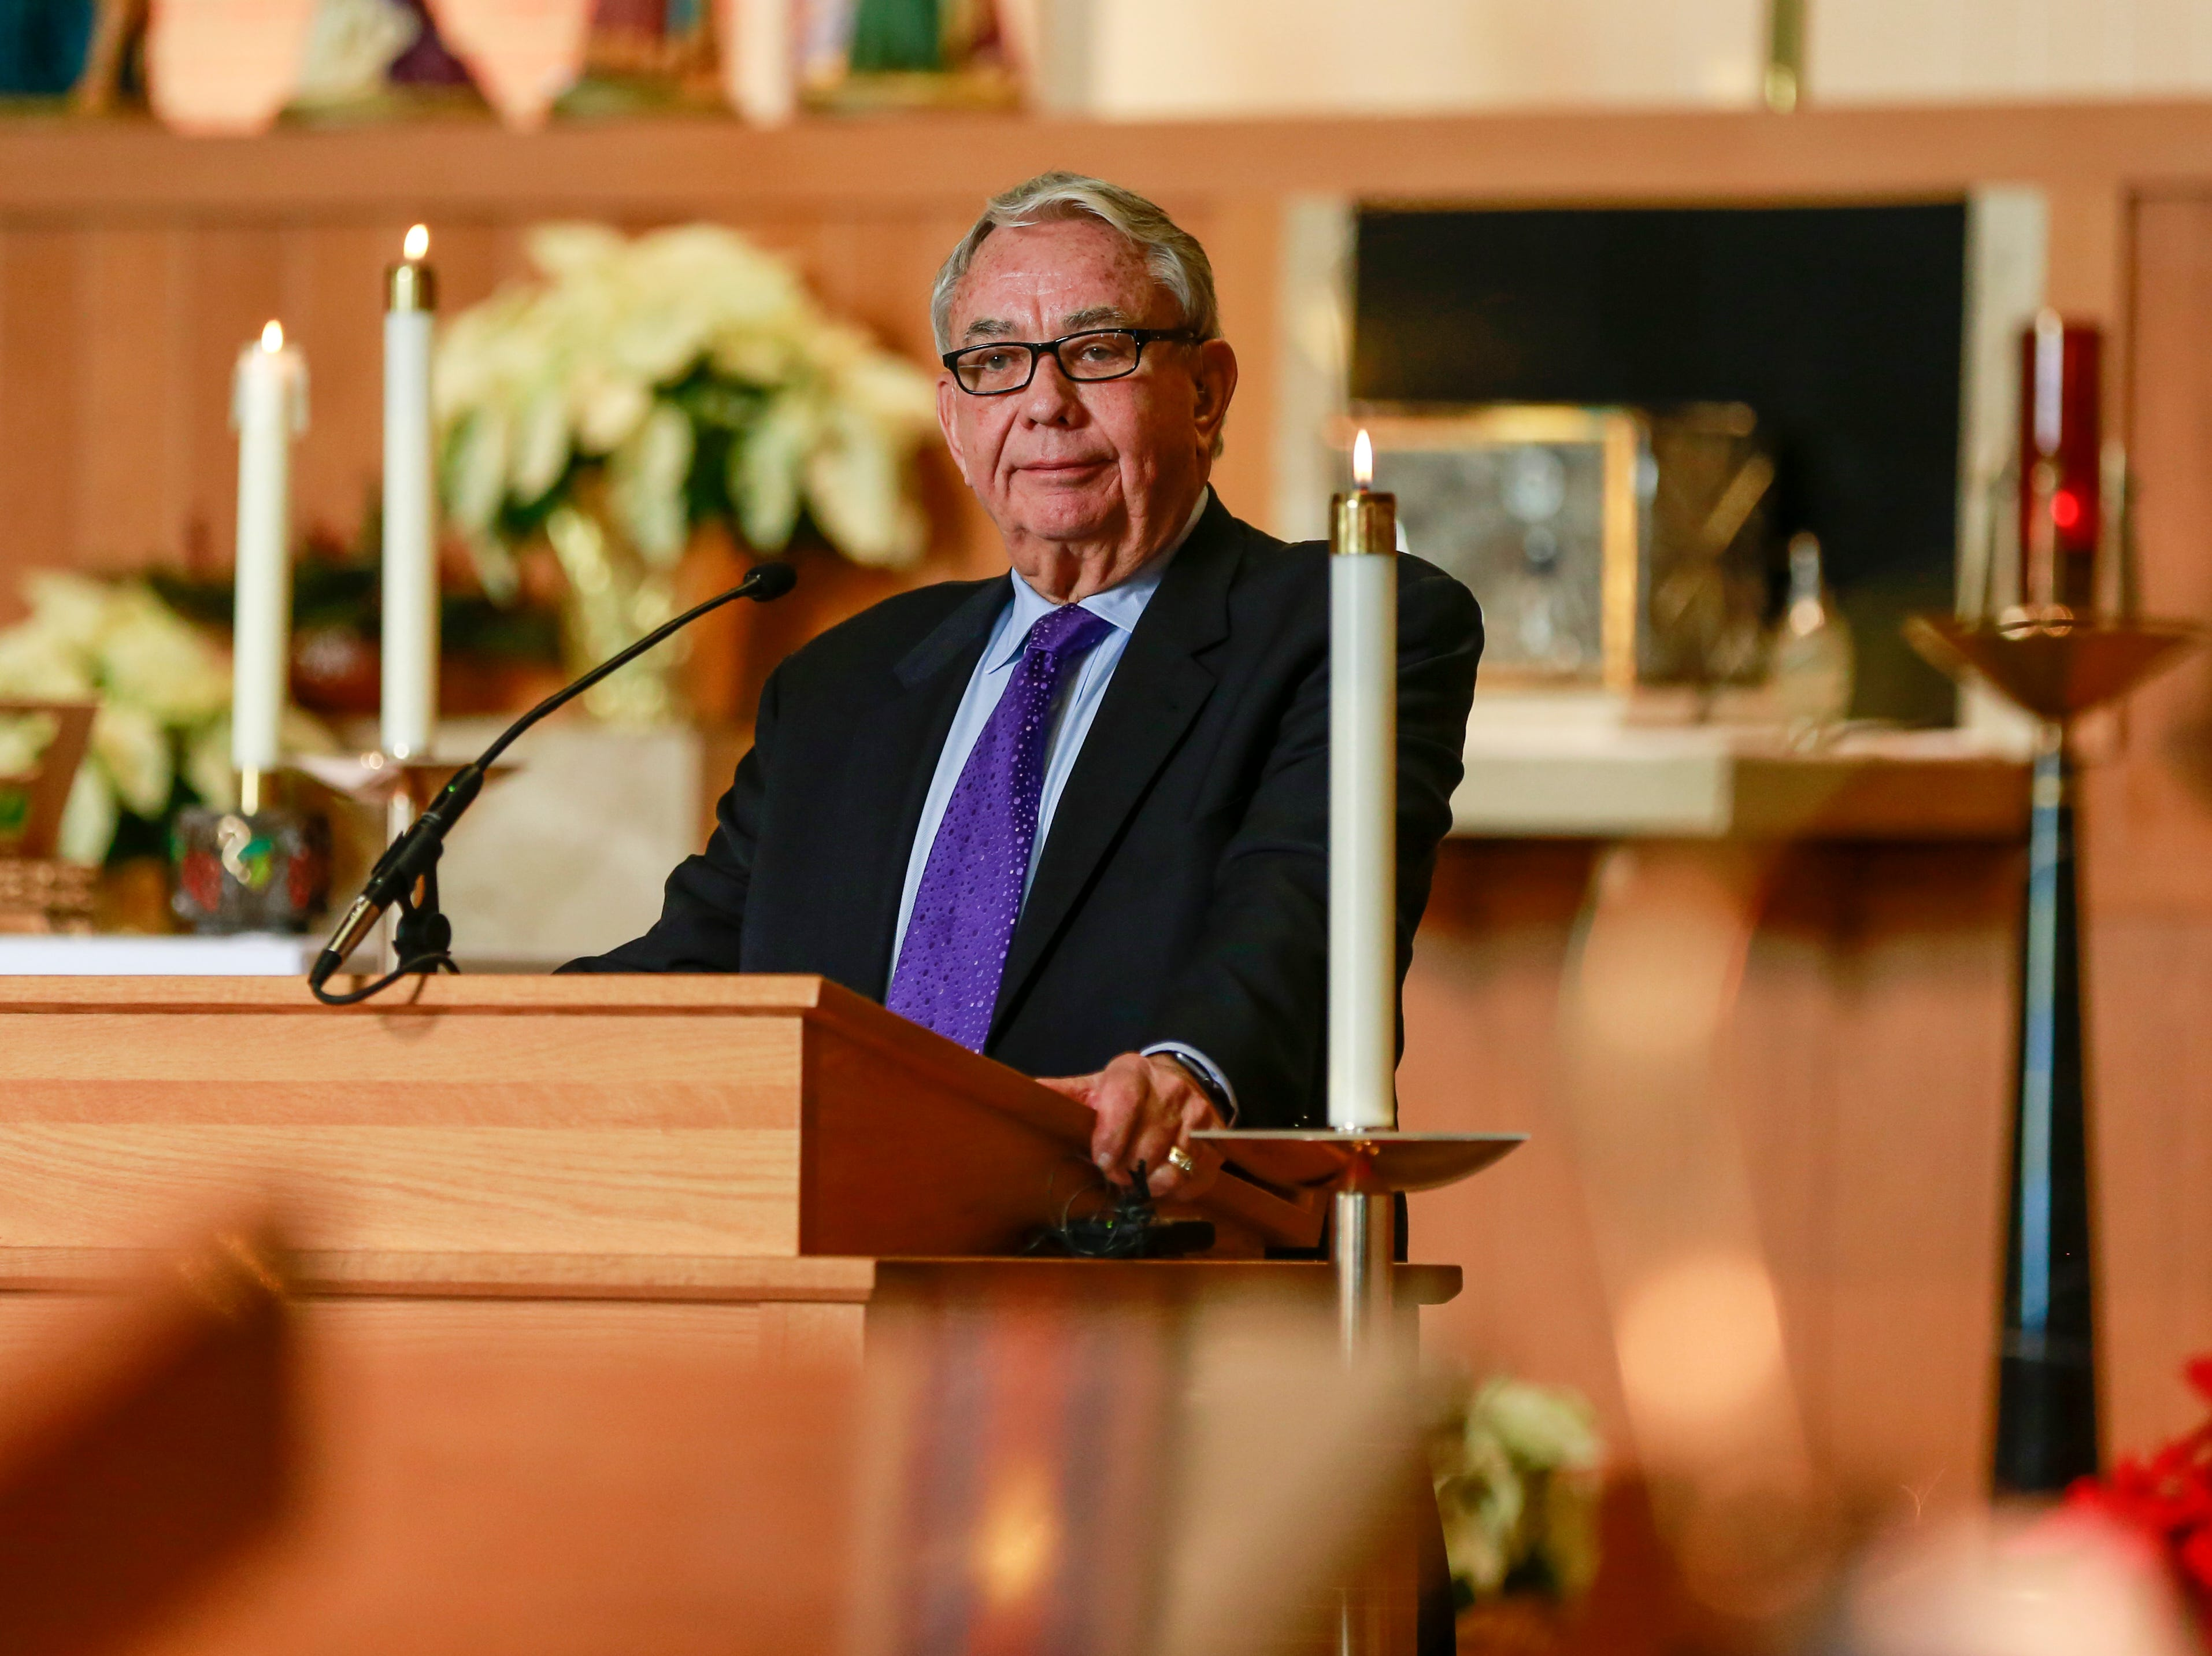 Former Governor Tommy Thompson makes a speech during former Sen. Walter Chilsen's funeral service Friday, Jan. 04, 2019, at Holy Name of Jesus Parish in Wausau, Wisc. T'xer Zhon Kha/USA TODAY NETWORK-Wisconsin